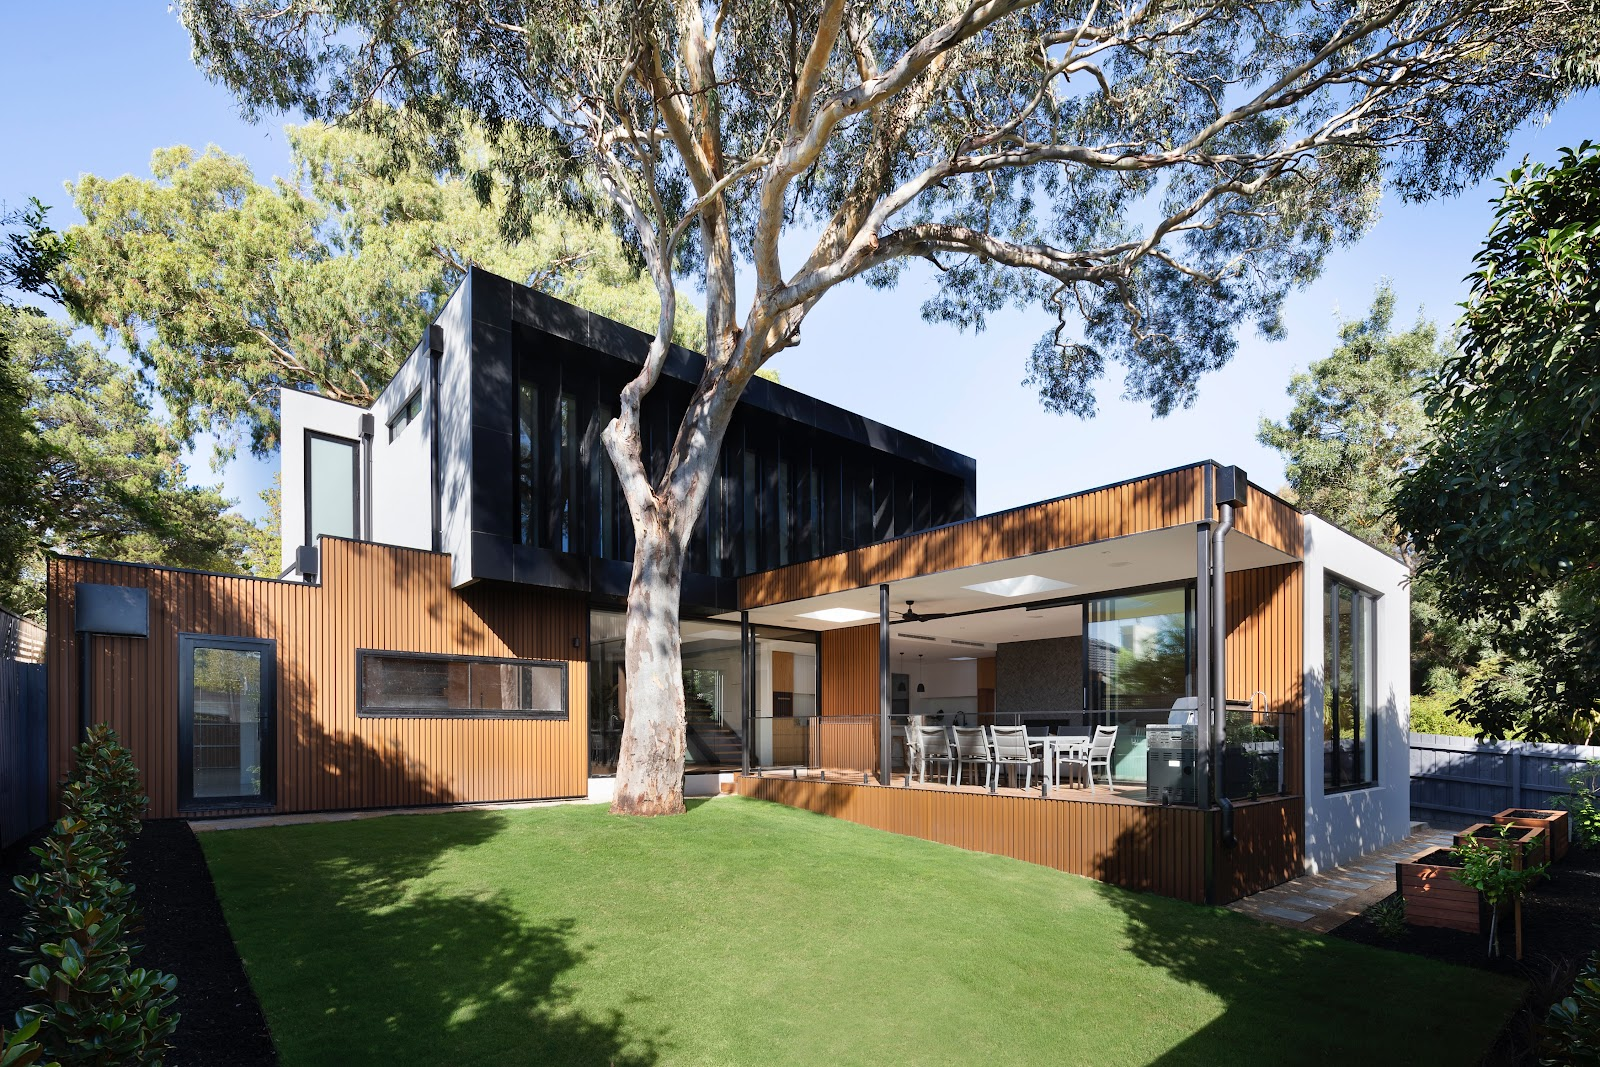 Architecturally designed house with surrounding trees